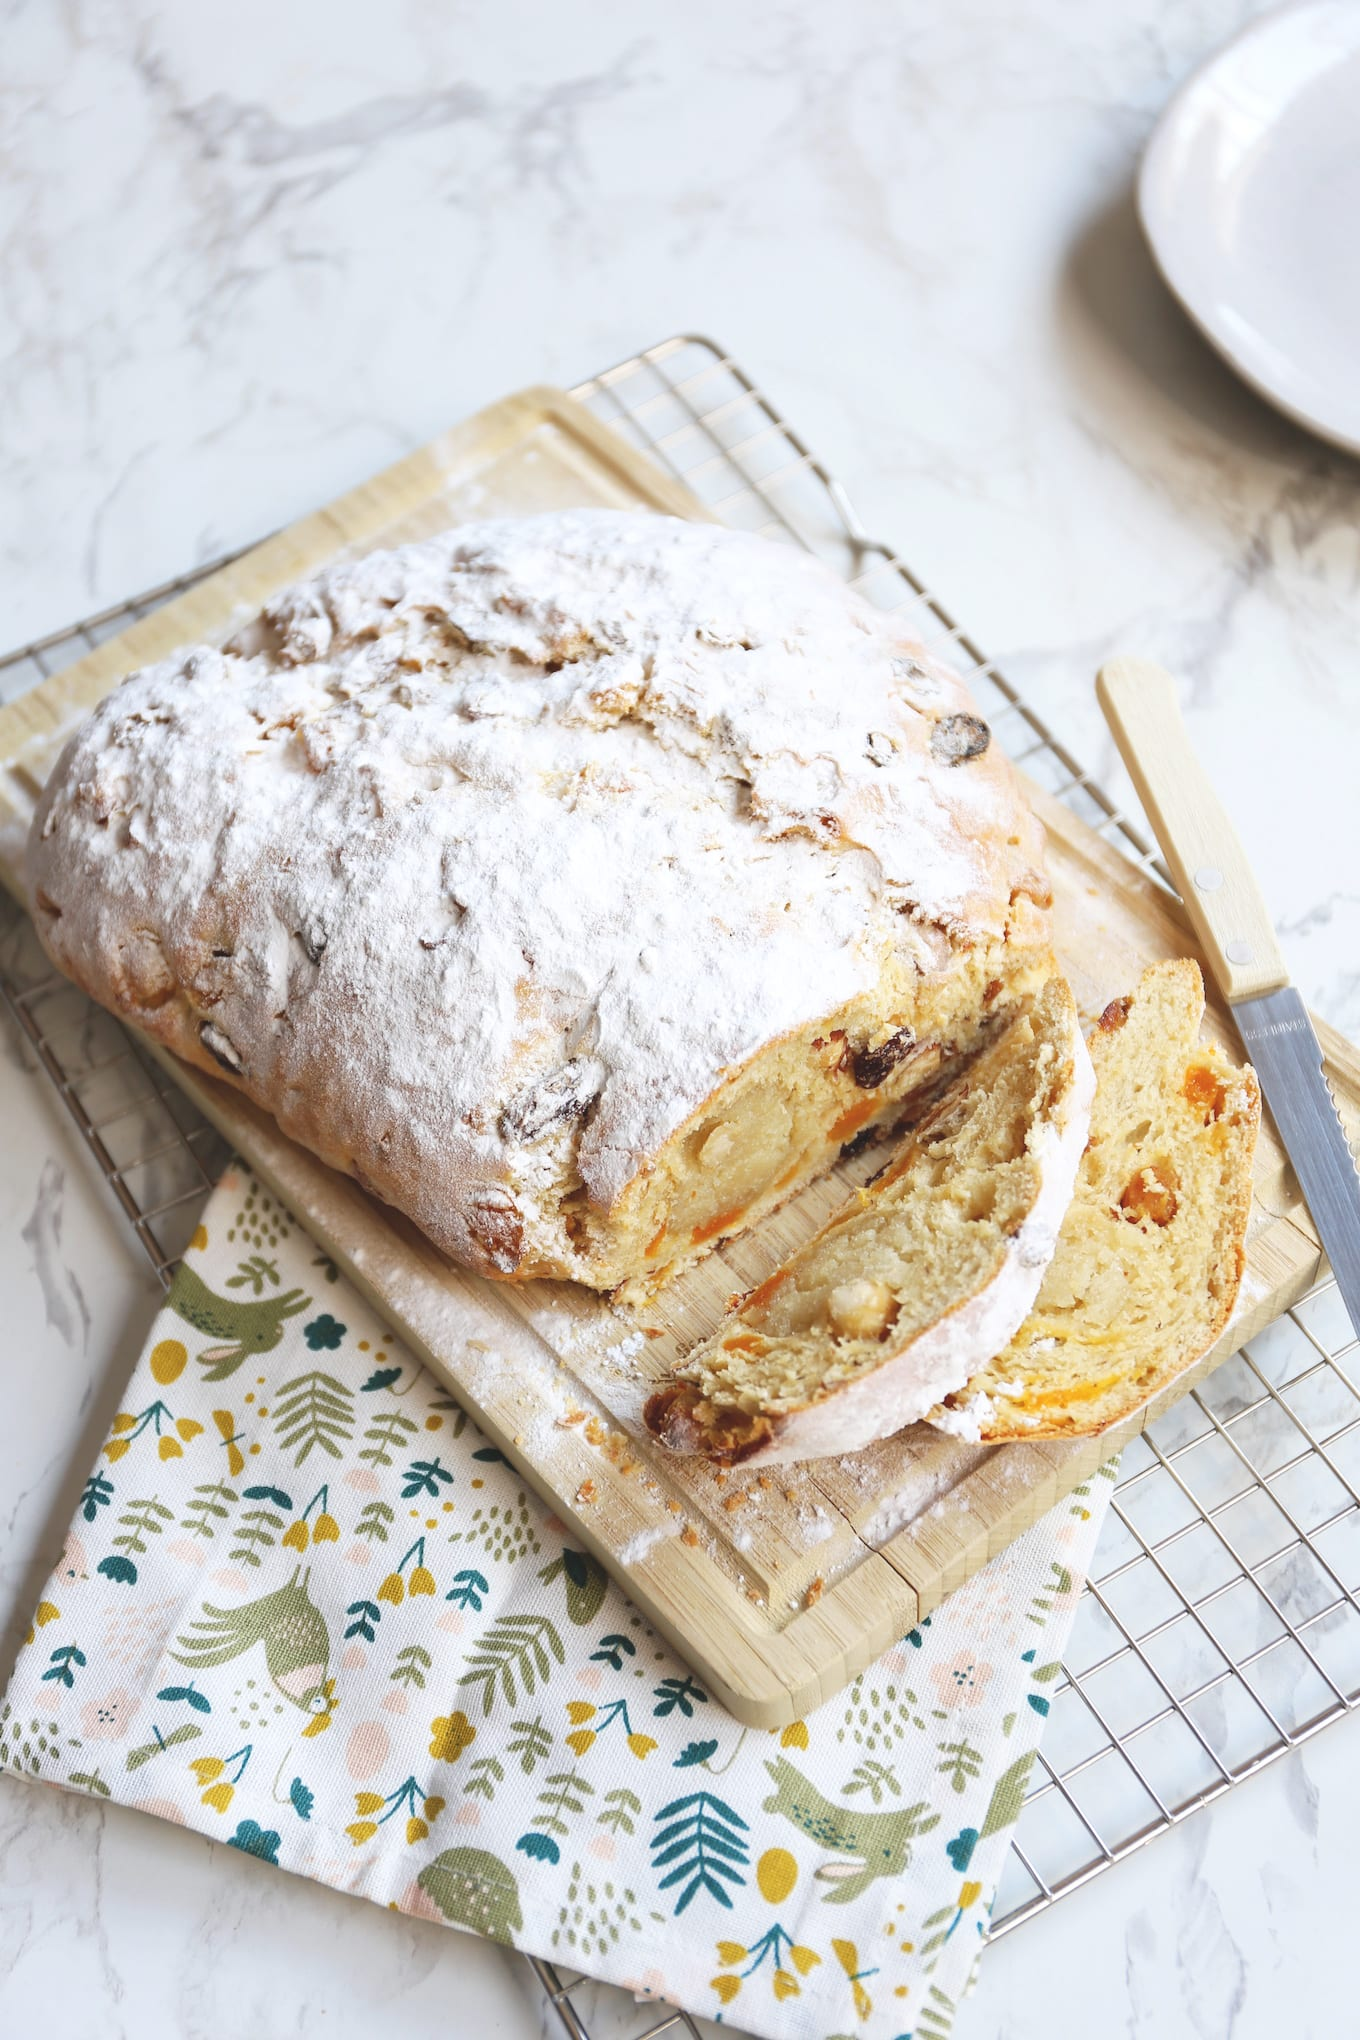 Easter bread with food &quot;width =&quot; 1360 &quot;height =&quot; 2040 &quot;/&gt; <br /> <strong> Follow us on Pinterest and save it there this recipe on! </strong> <br /> <img class=